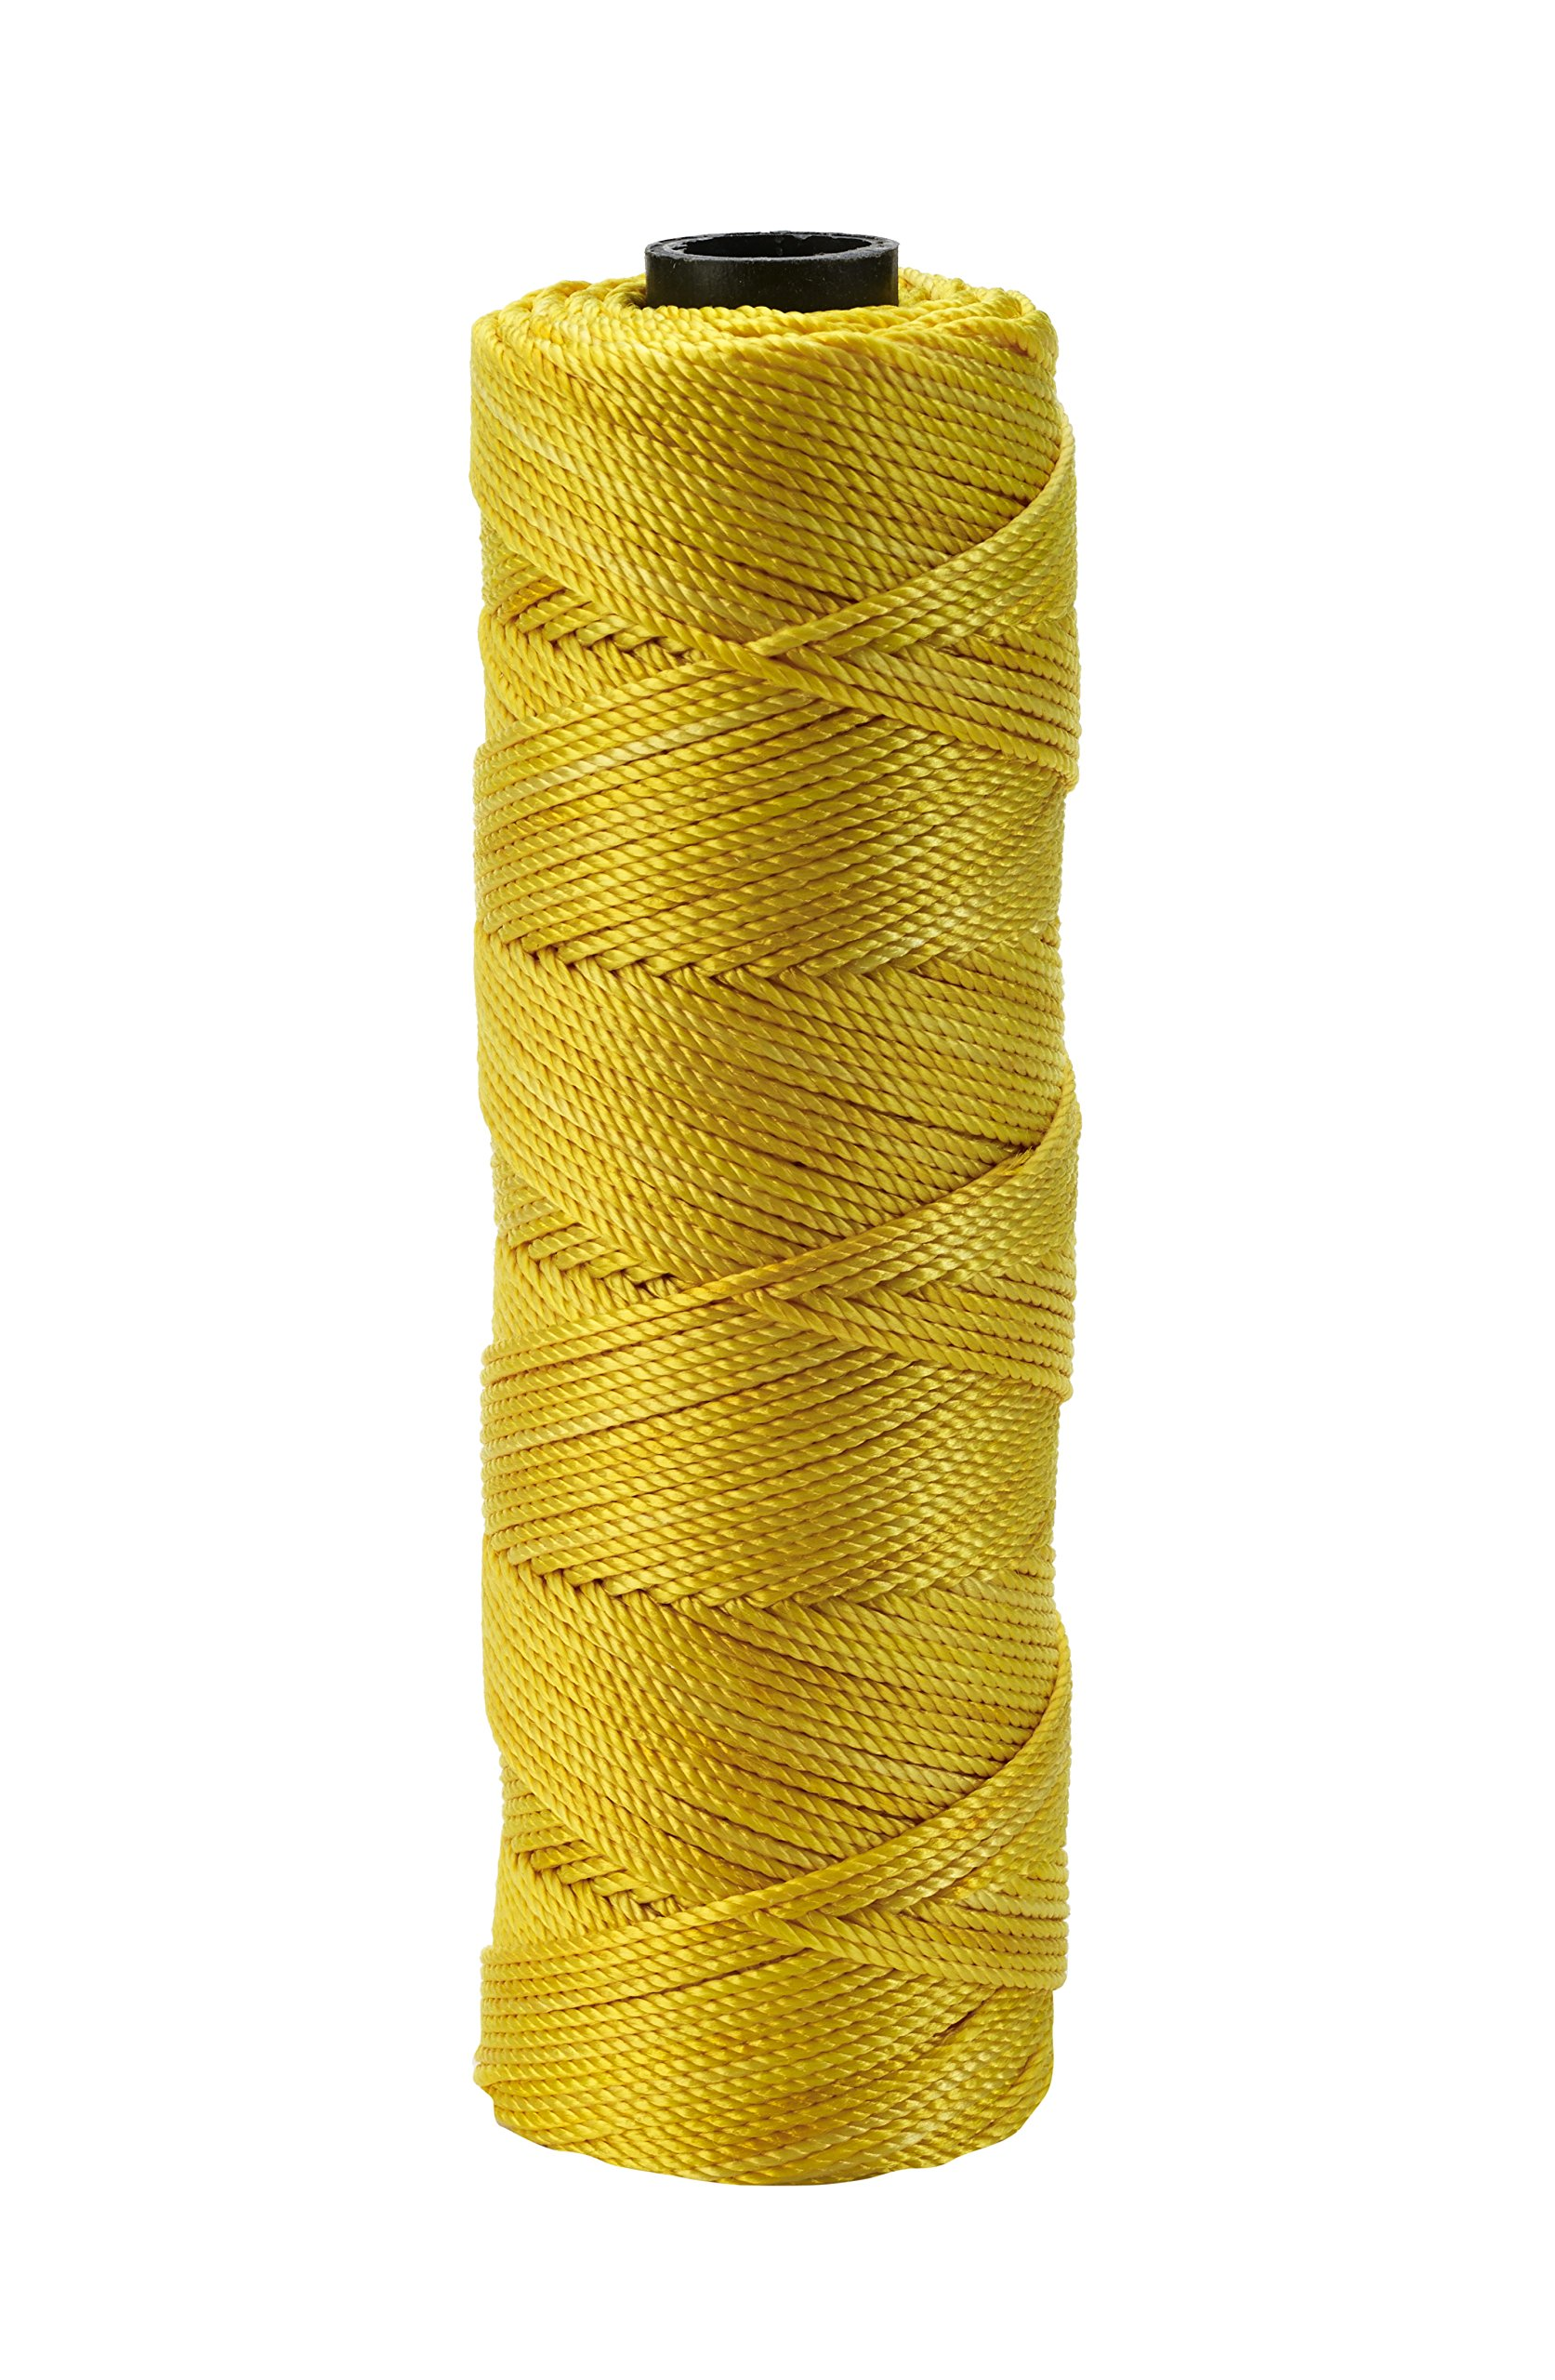 Mutual Industries 14661-138-275 Nylon Mason Twine, 1/4 lb. Twisted, 18 x 275', Glo Yellow (Pack of 6)